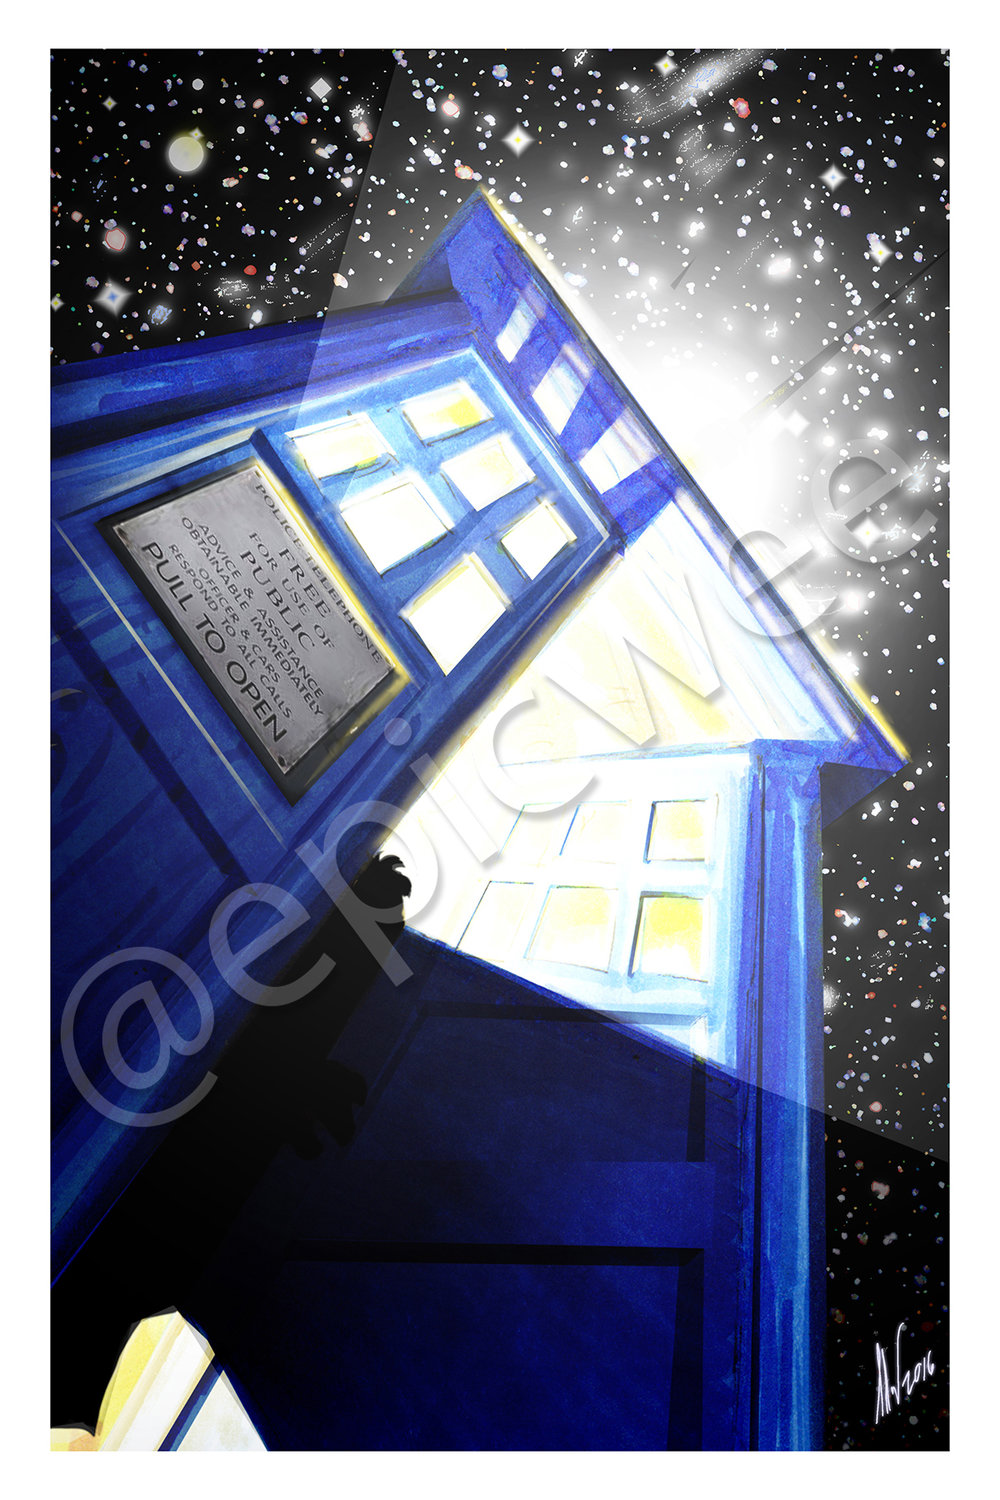 Doctor Who-Tardis 11x17 copy.jpg